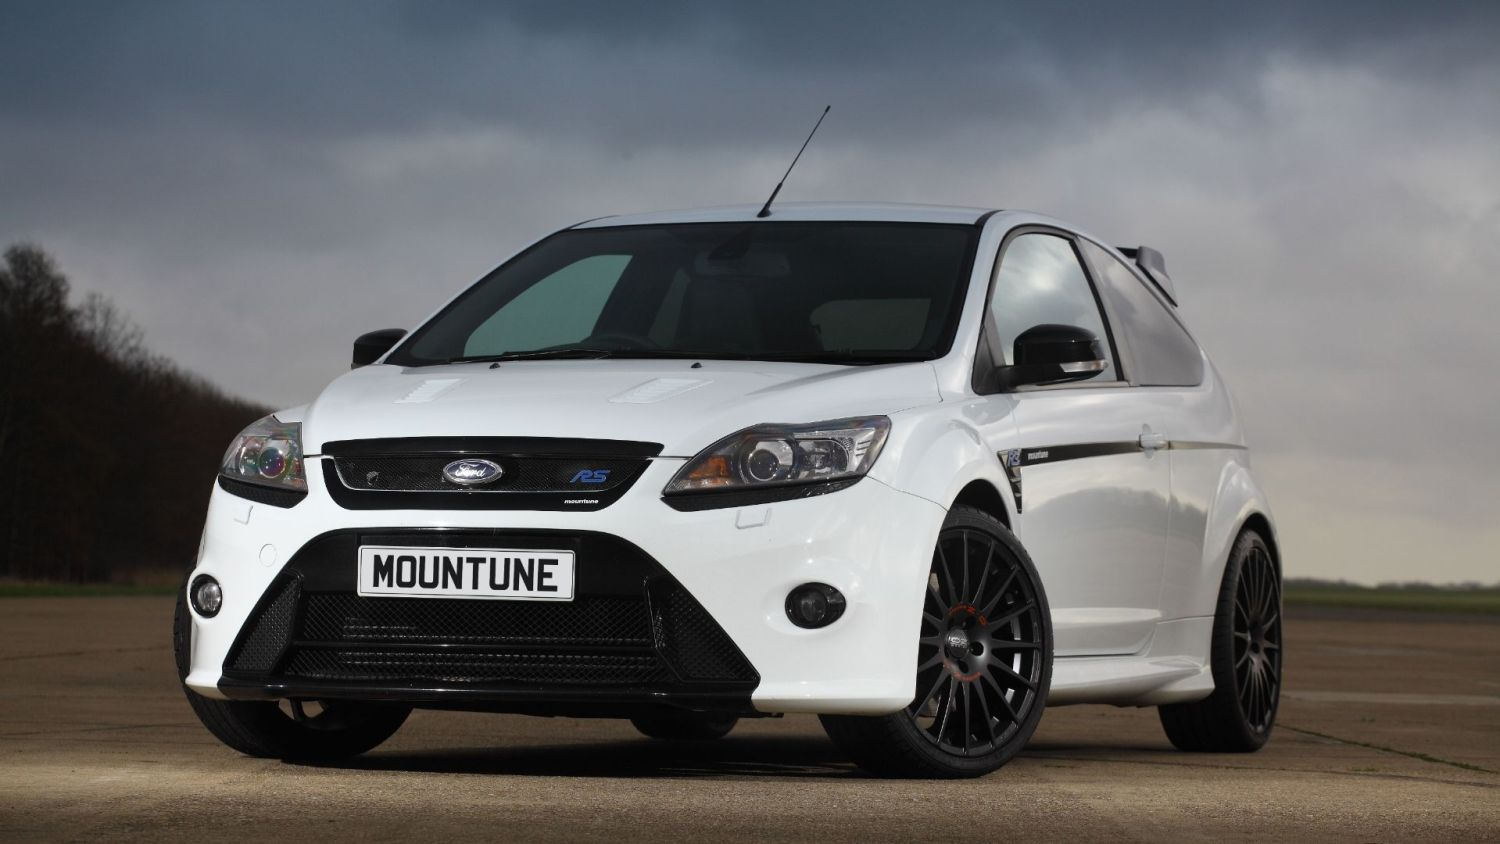 You can buy a Mountune racing-style gearbox for your Ford Focus